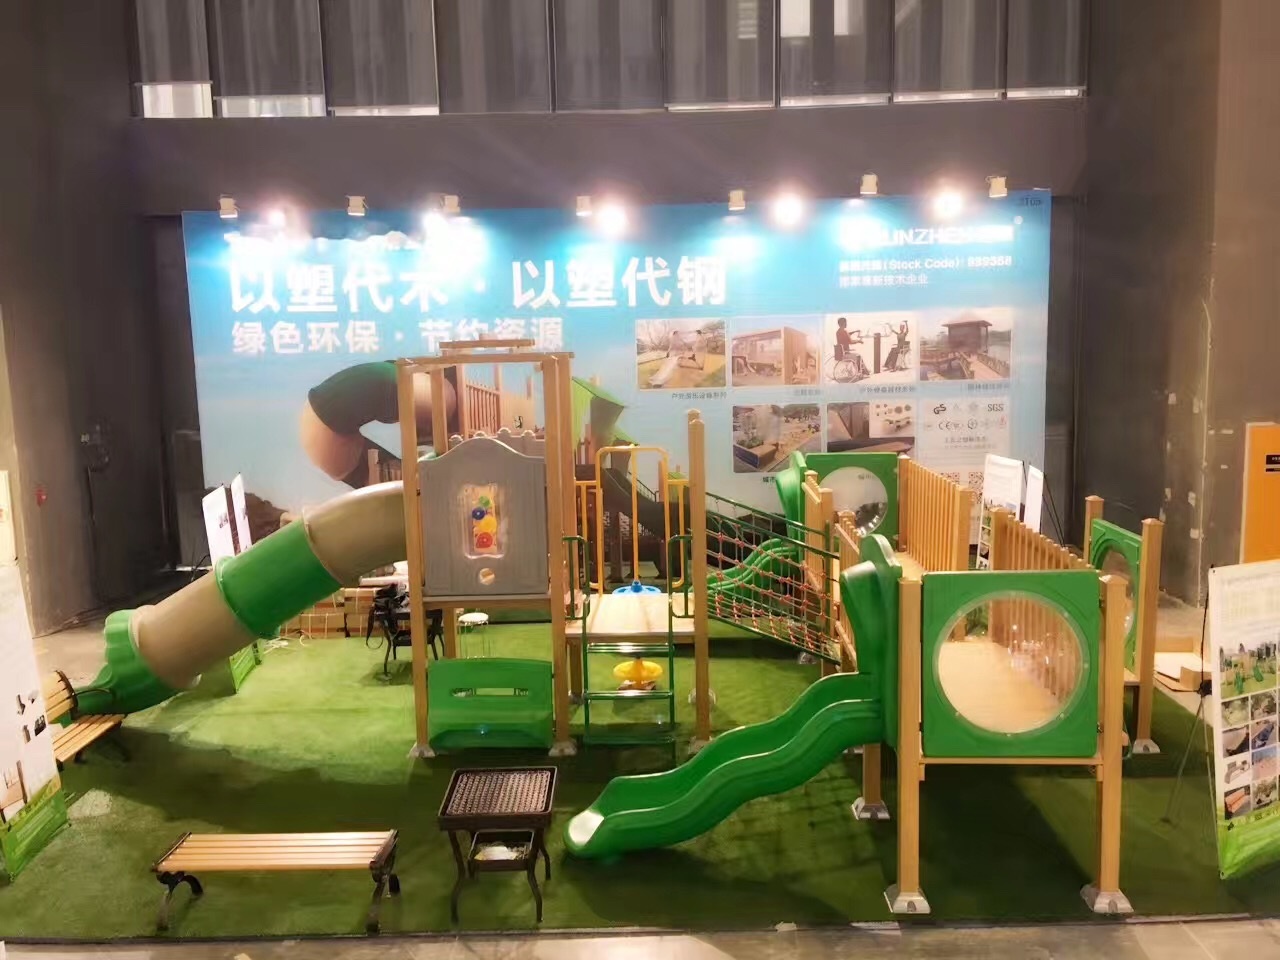 4.8-4.10 Guangzhou exhibition